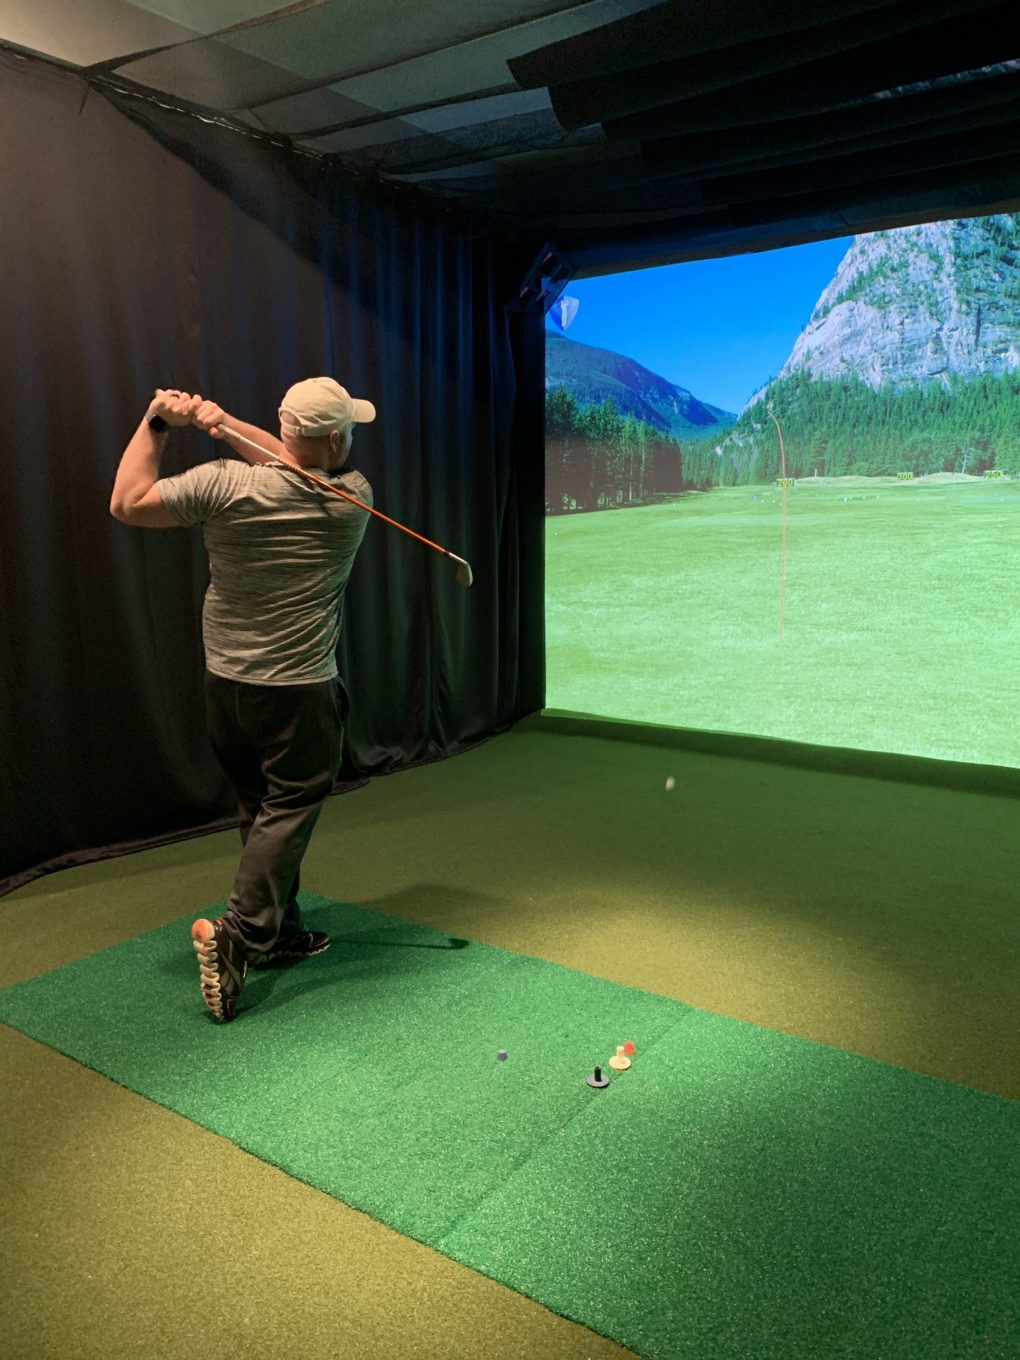 man using indoor golf simulator